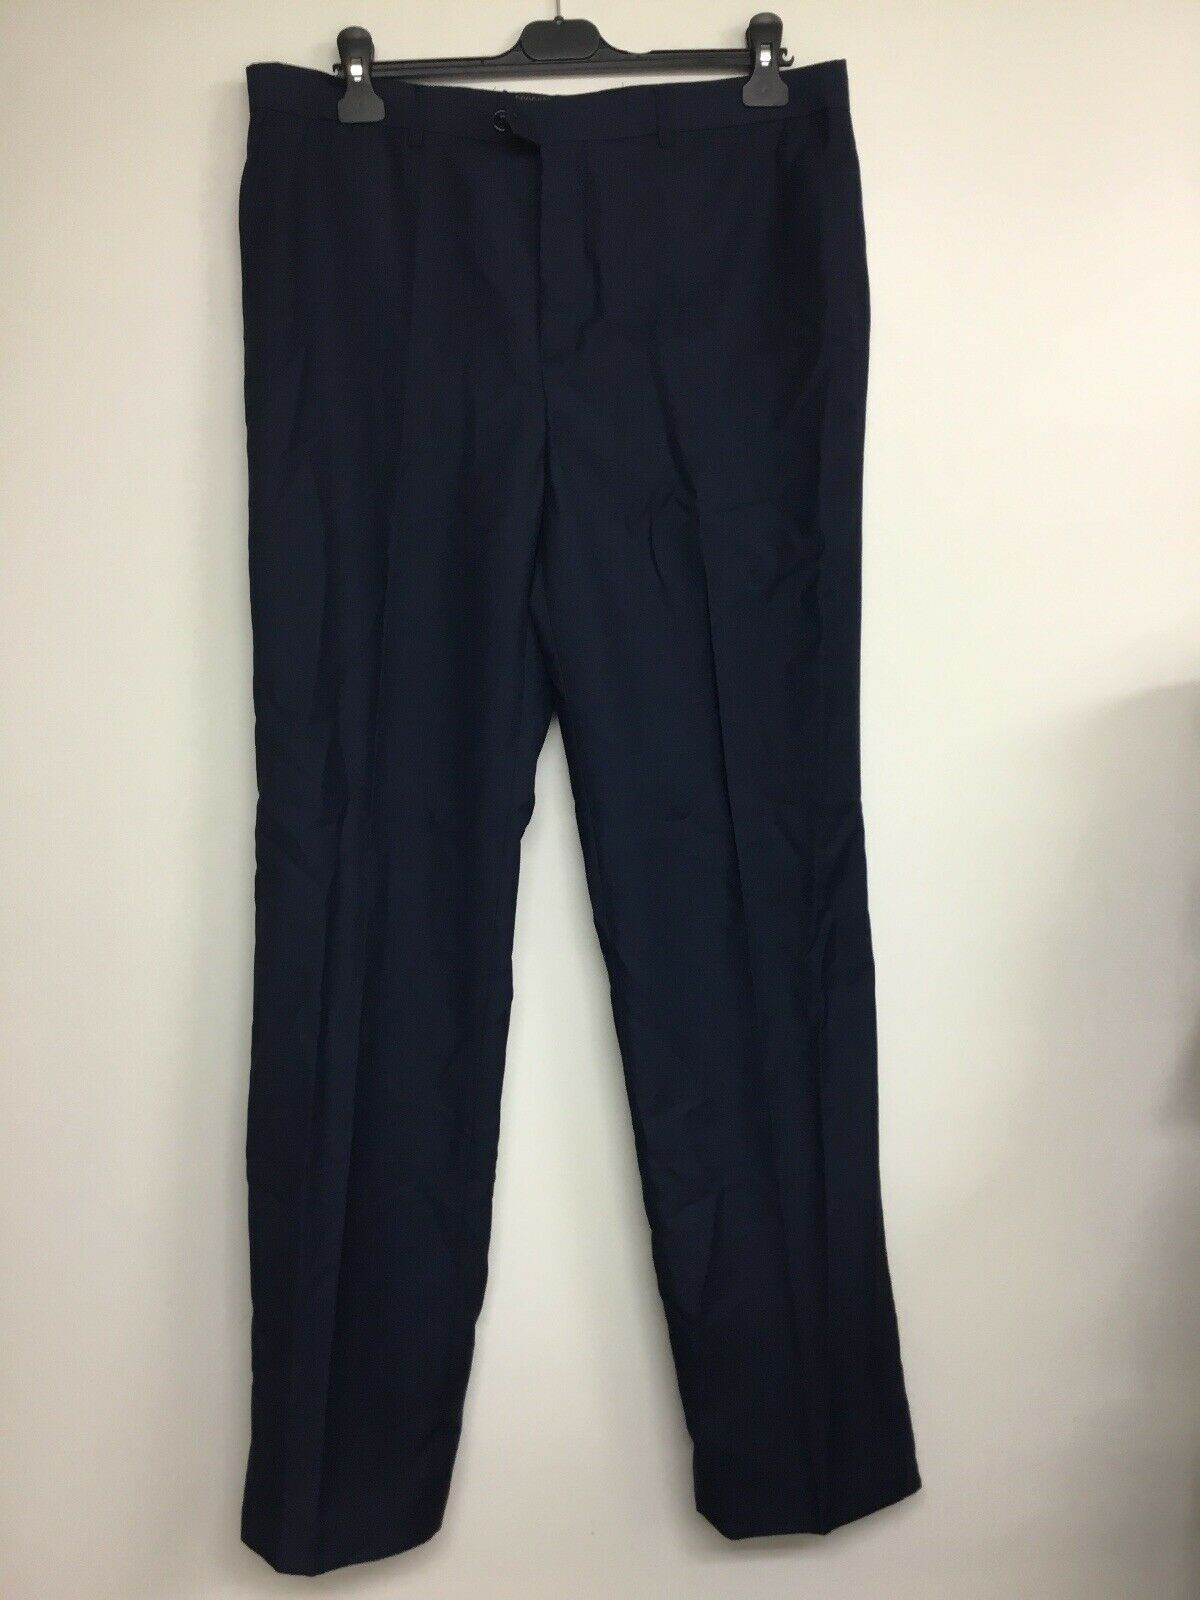 Primary image for Isaac Mizrahi Navy Boys 20H Tab-Front Dress Pants. New Without Tags